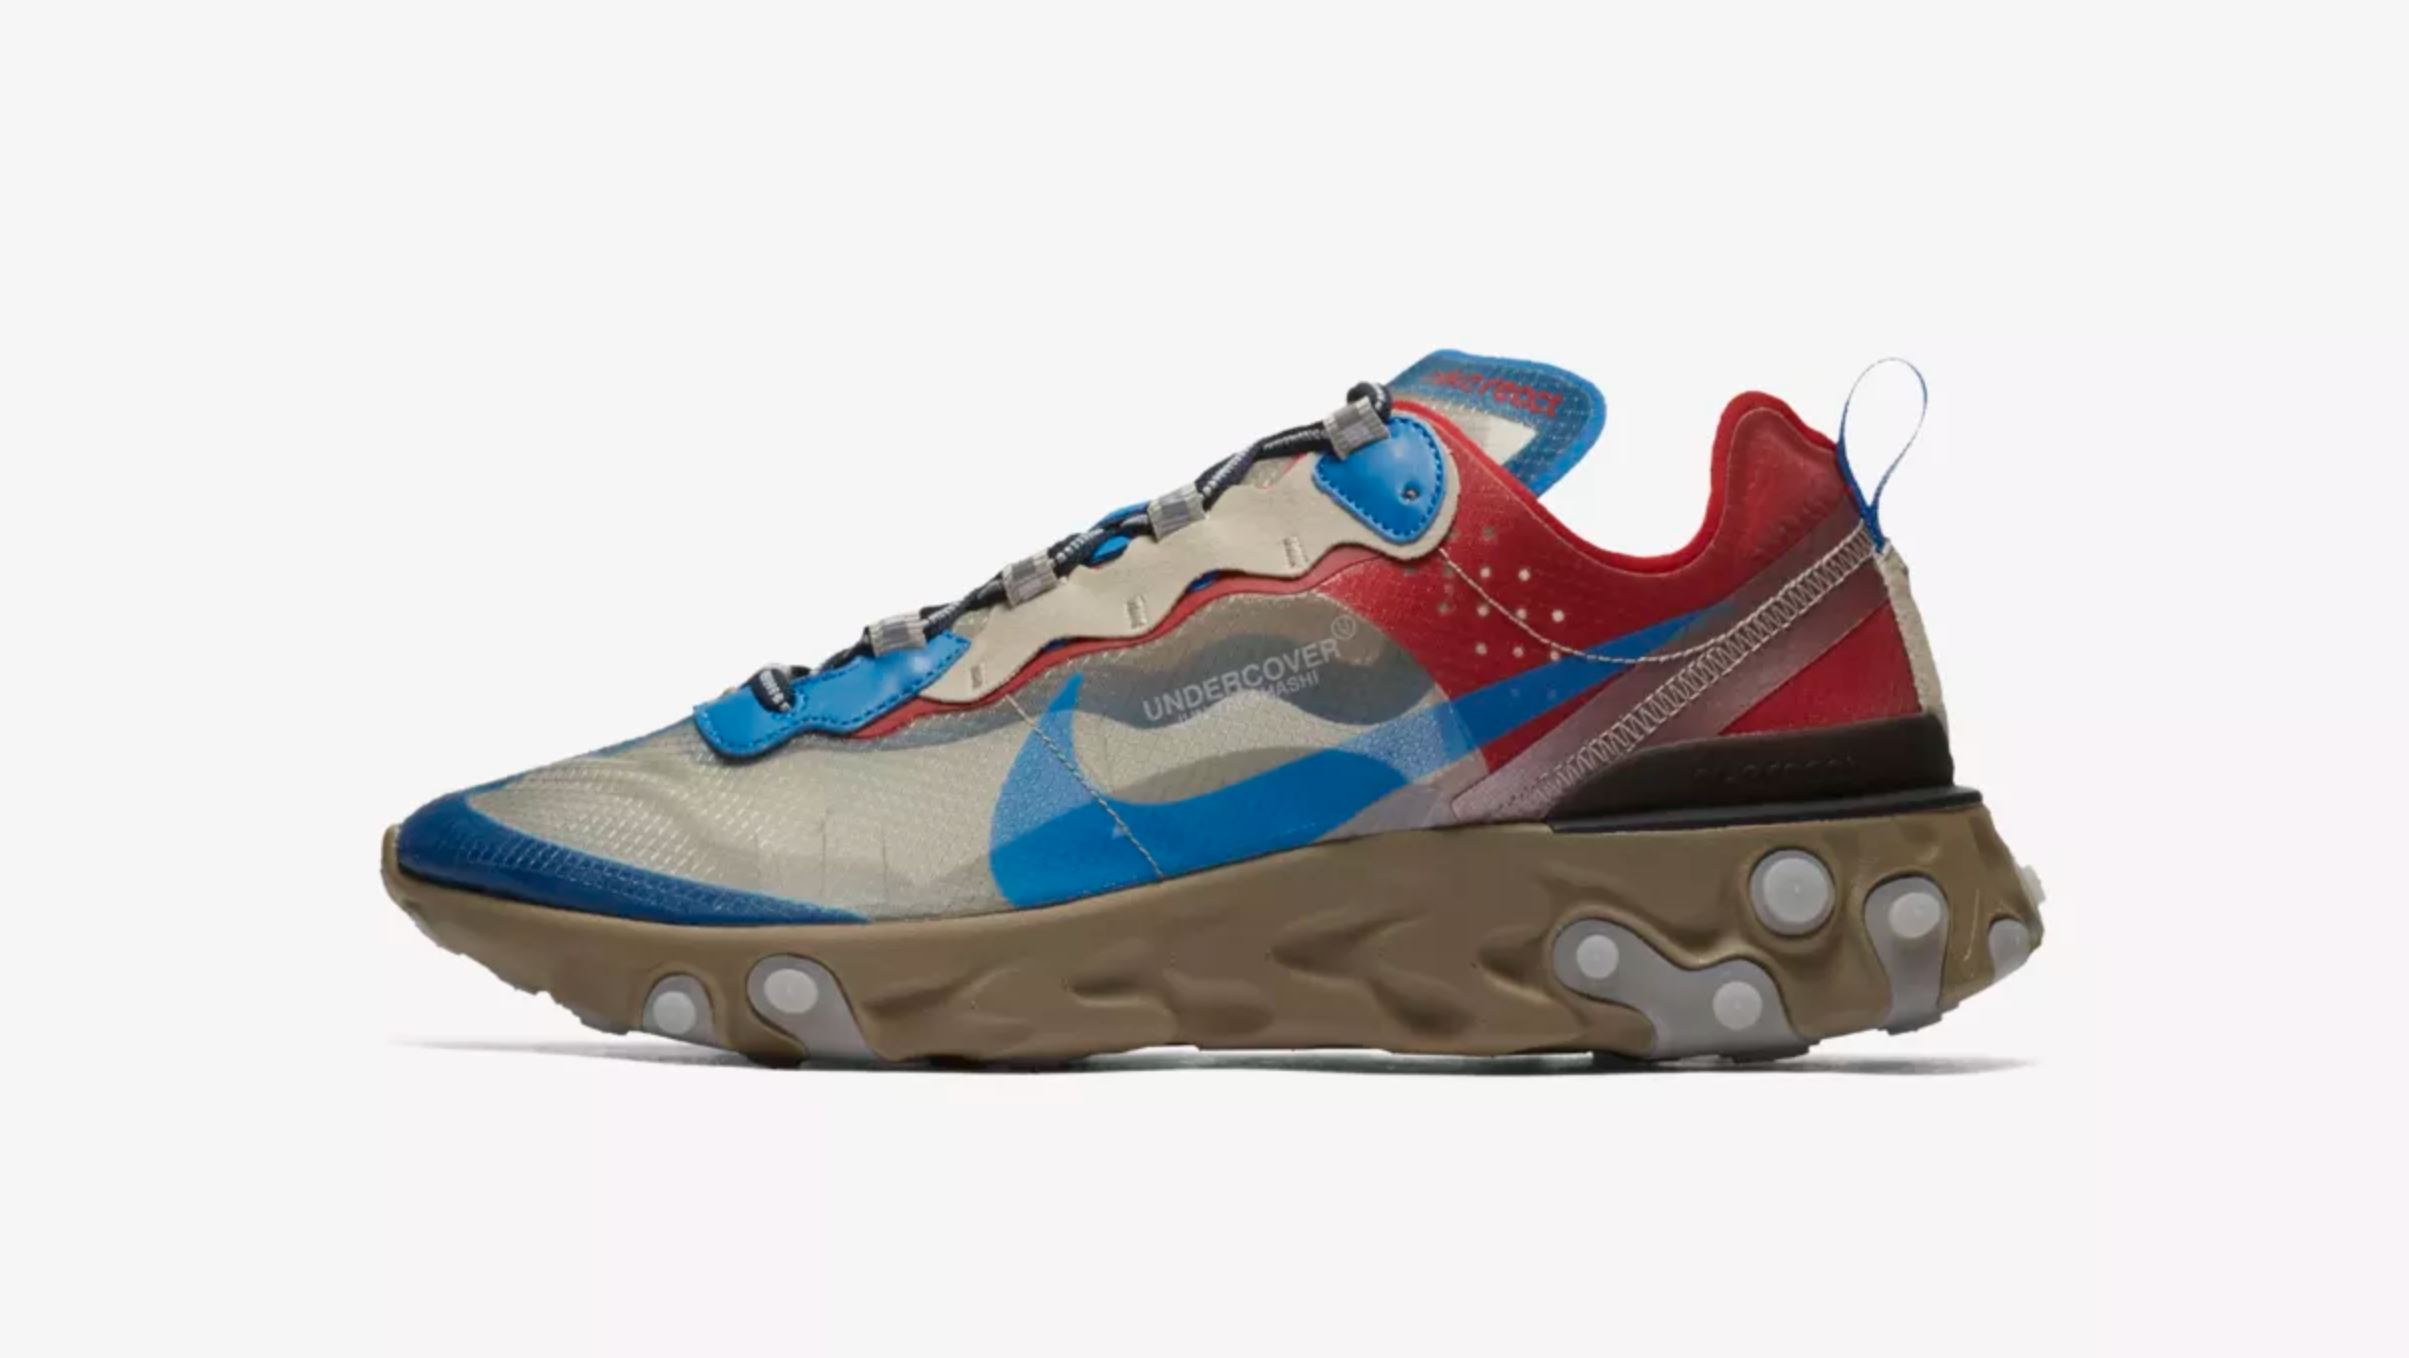 nike react element 87 undercover